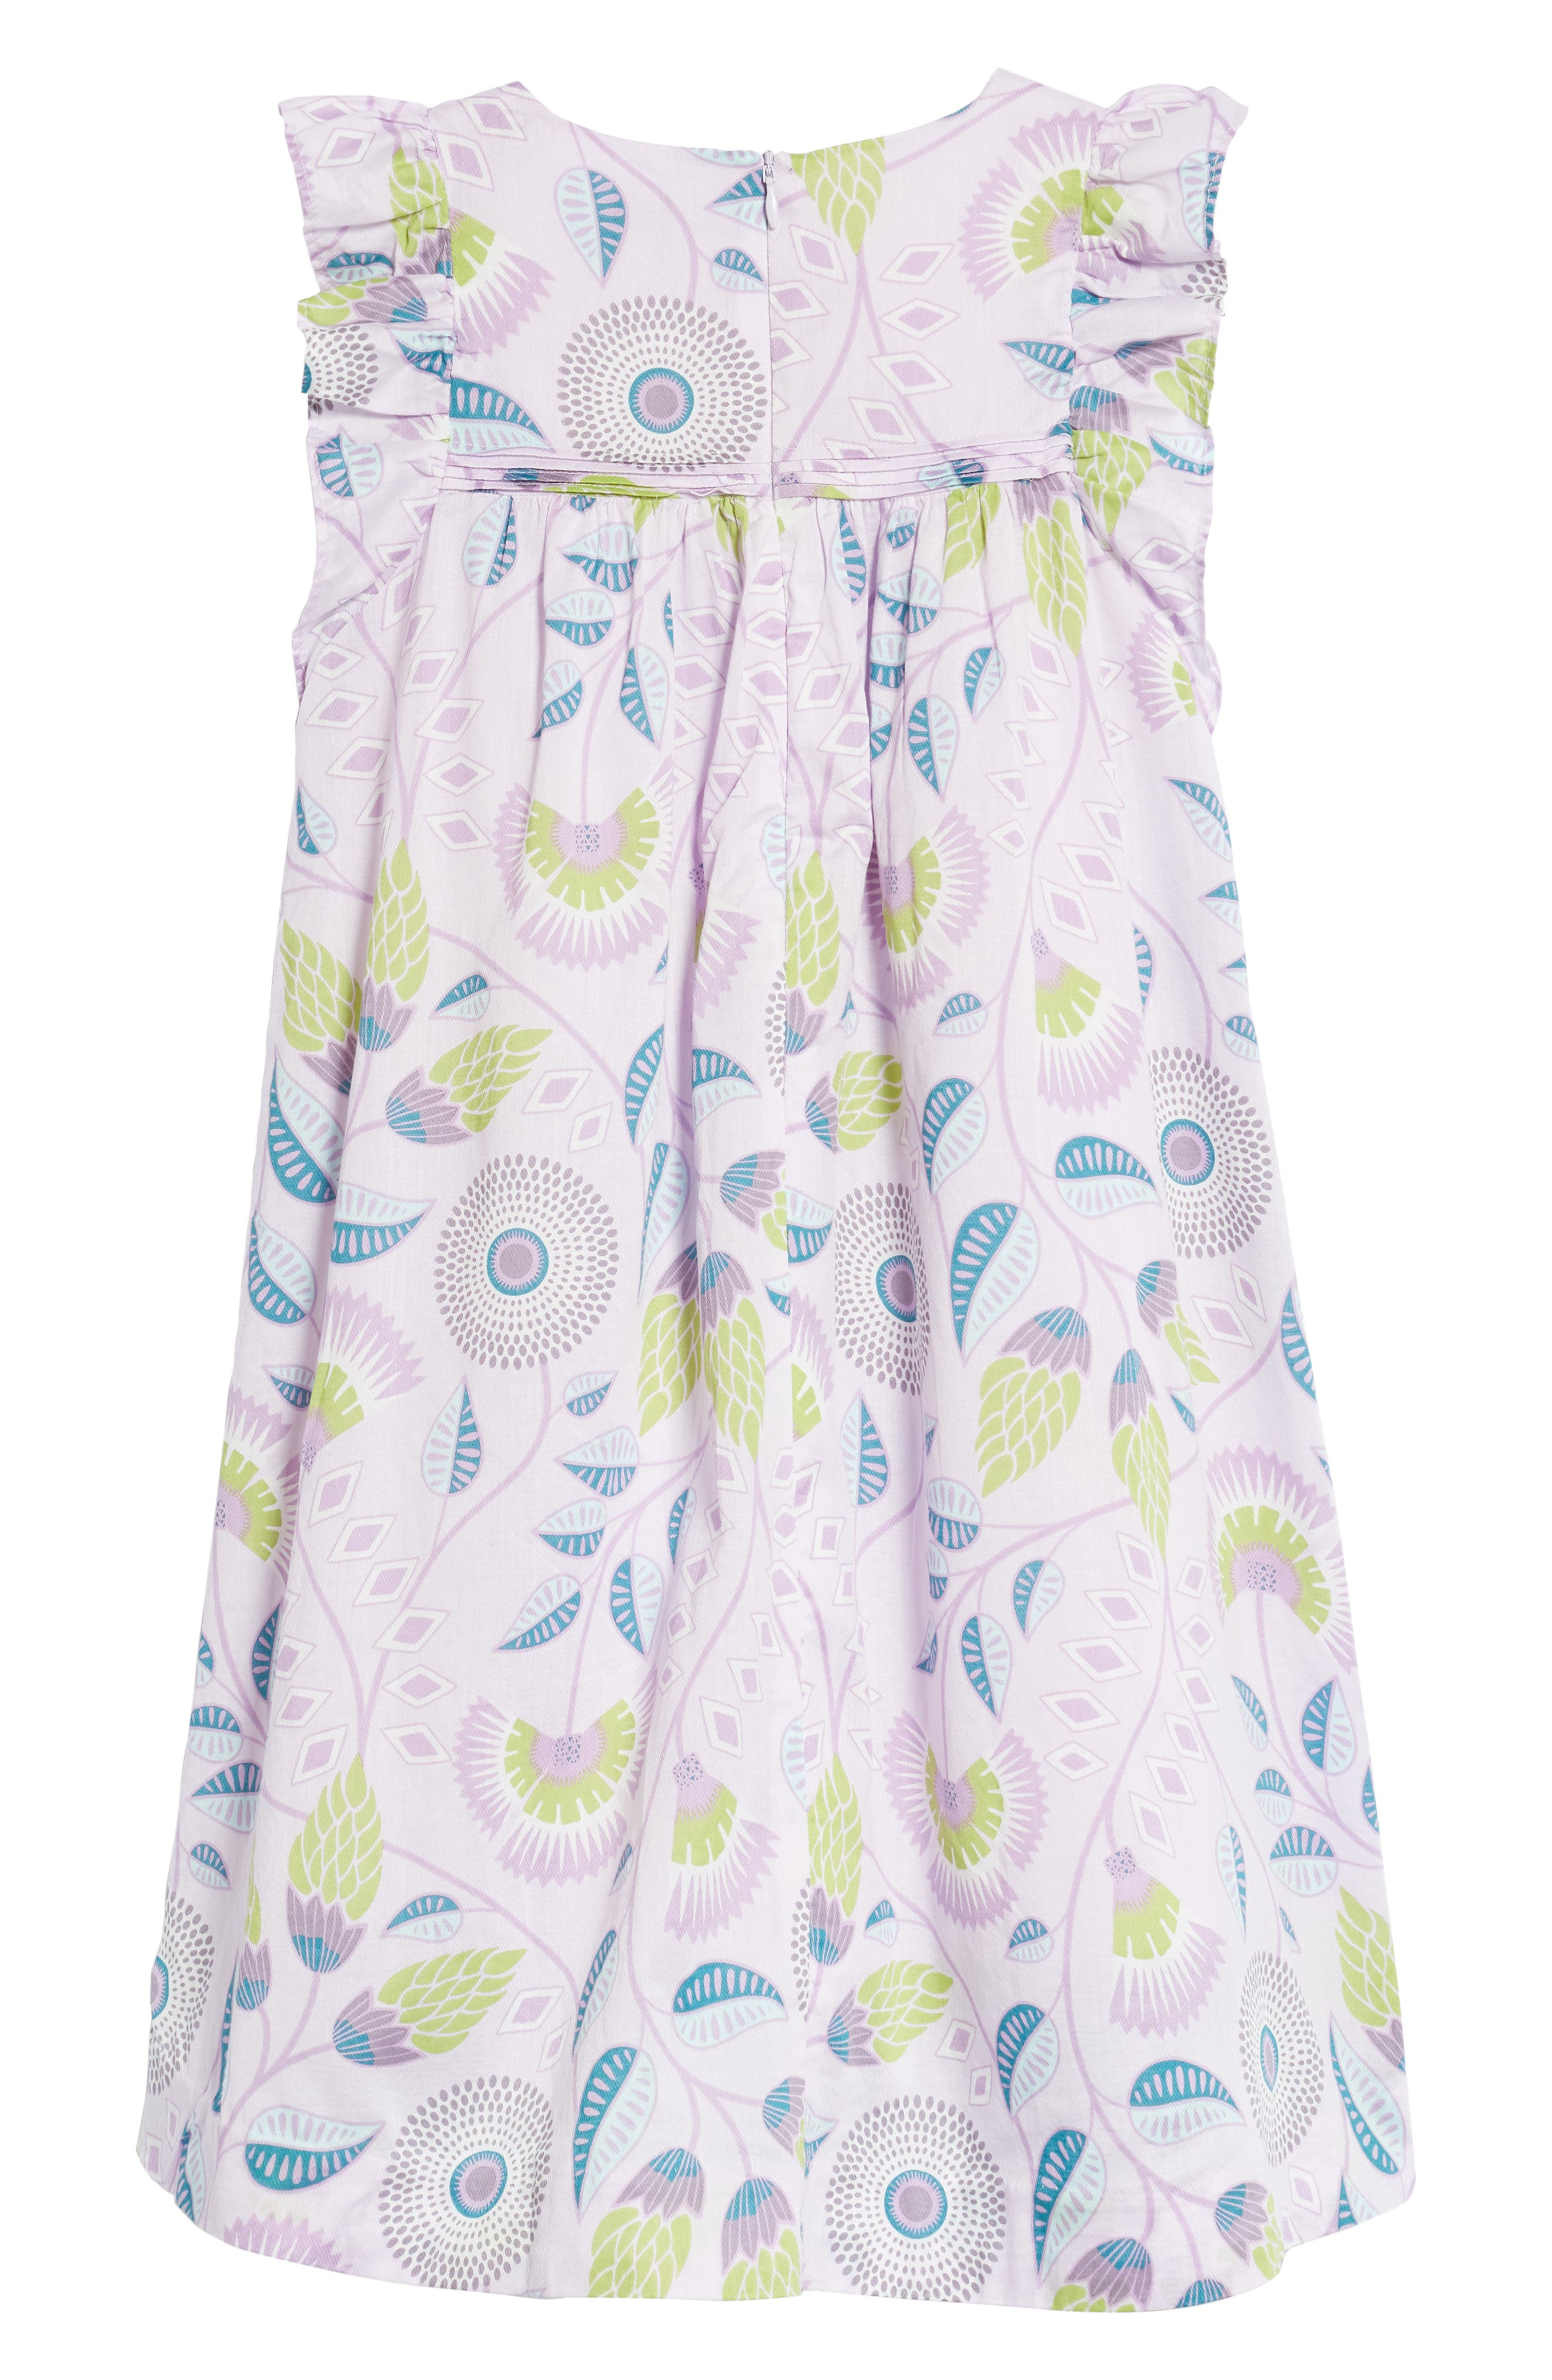 Blooming Floral High/Low Dress,                             Alternate thumbnail 2, color,